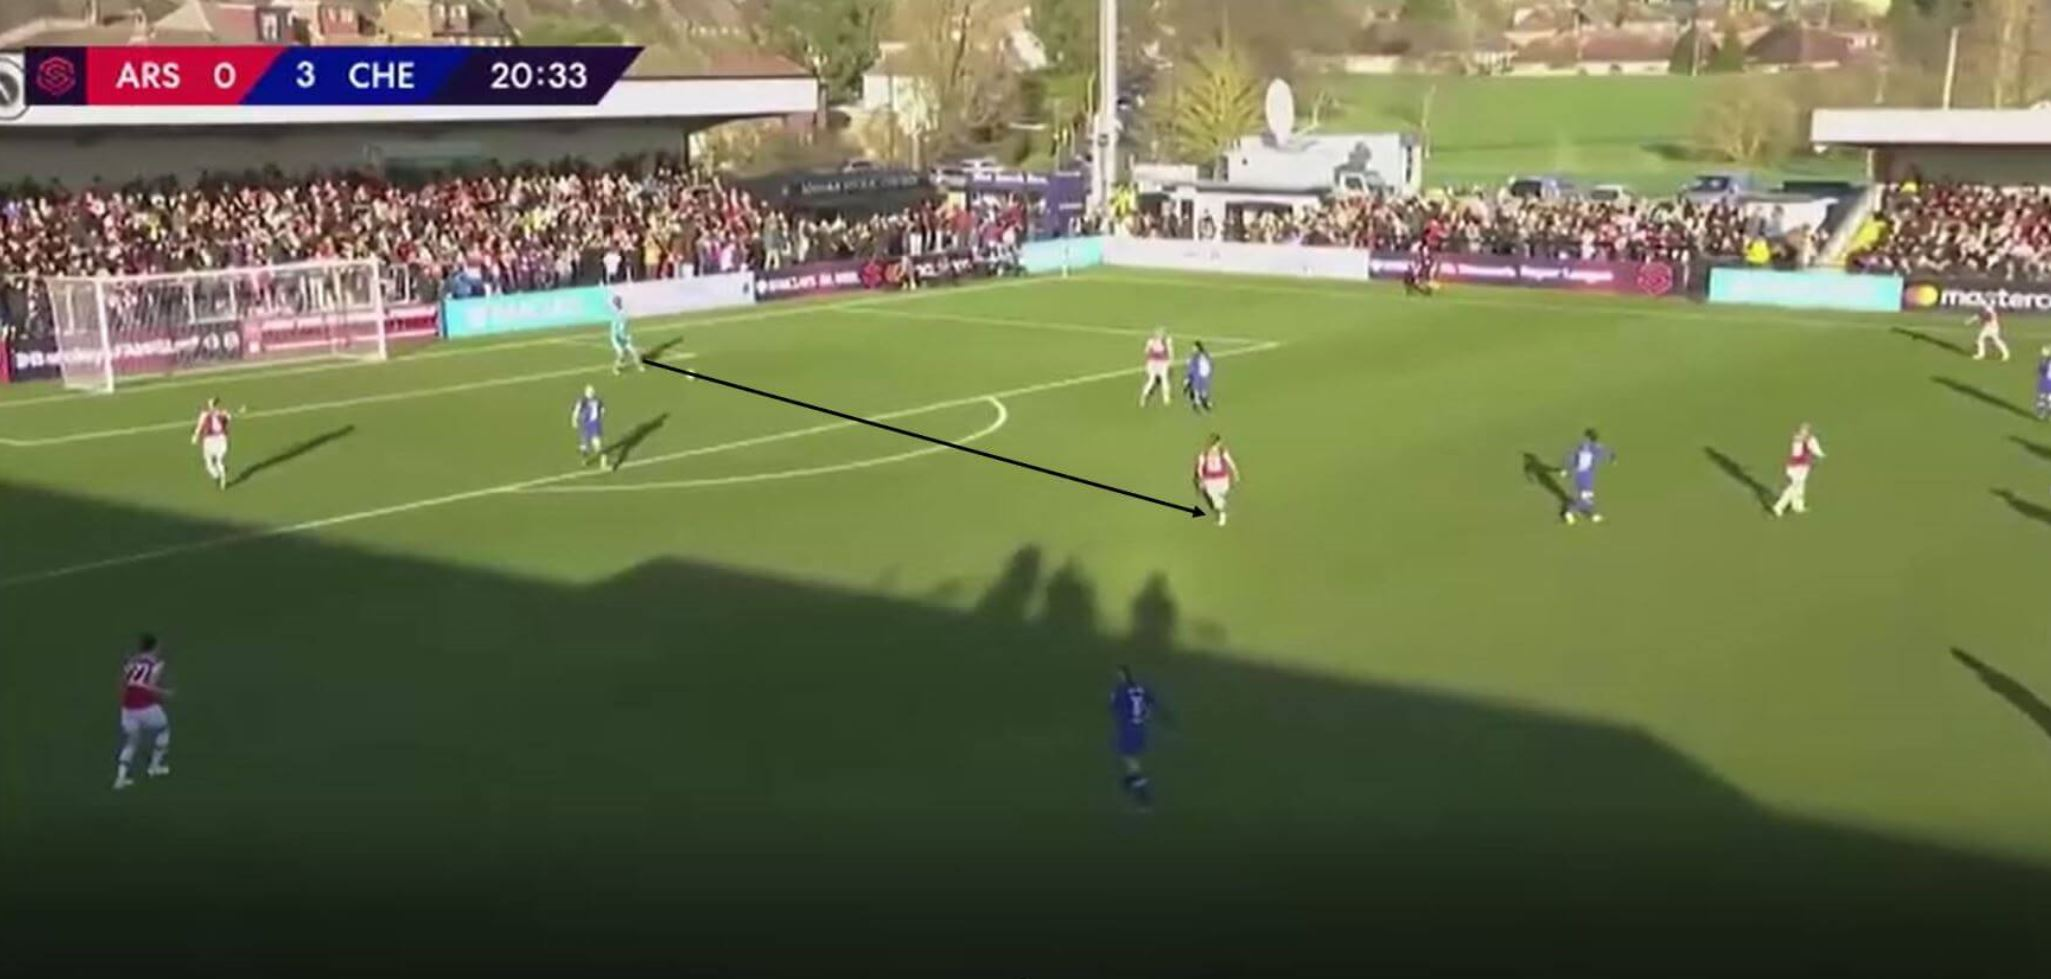 Arsenal WFC: Analysis of their build out phase - tactics